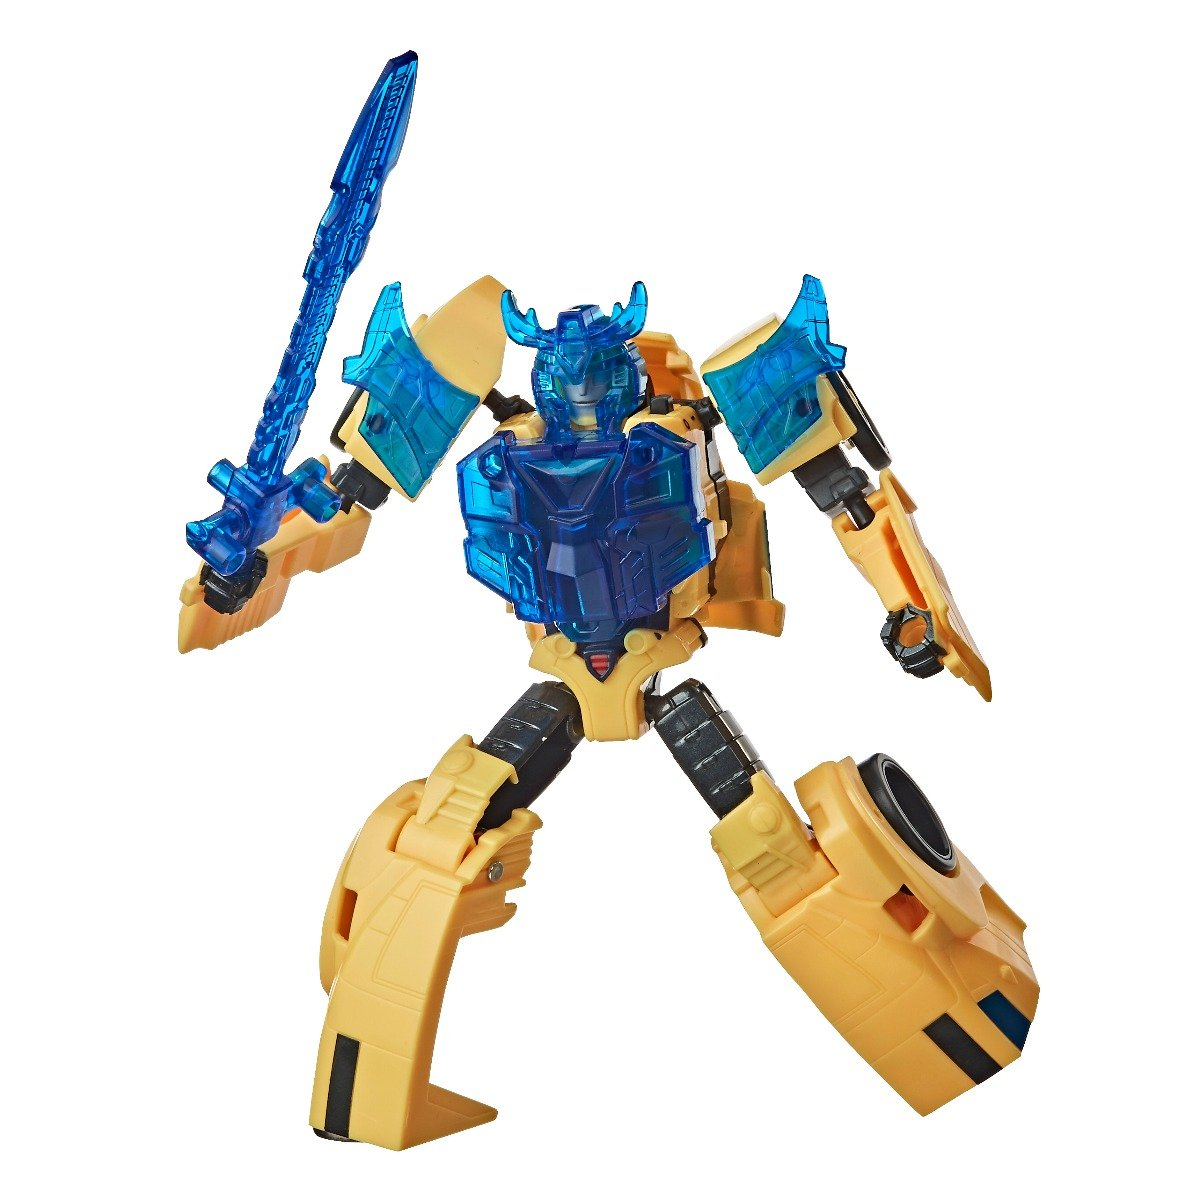 Figurina Transformers Cyberverse Battle Call, Bumblebee, E8373